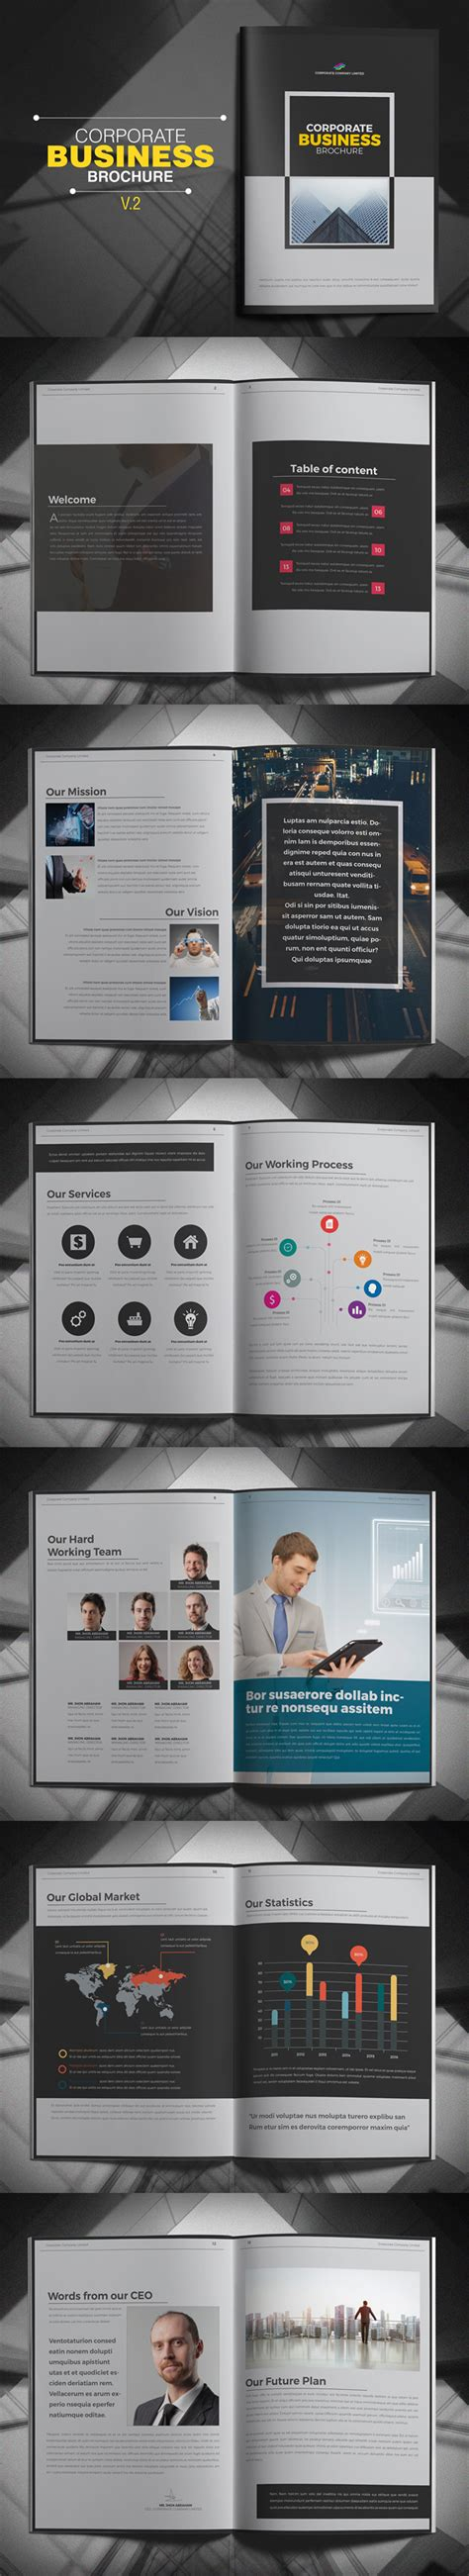 Business Brochure Design Template 000439 Template Catalog New Catalog Brochure Design Templates Design Graphic